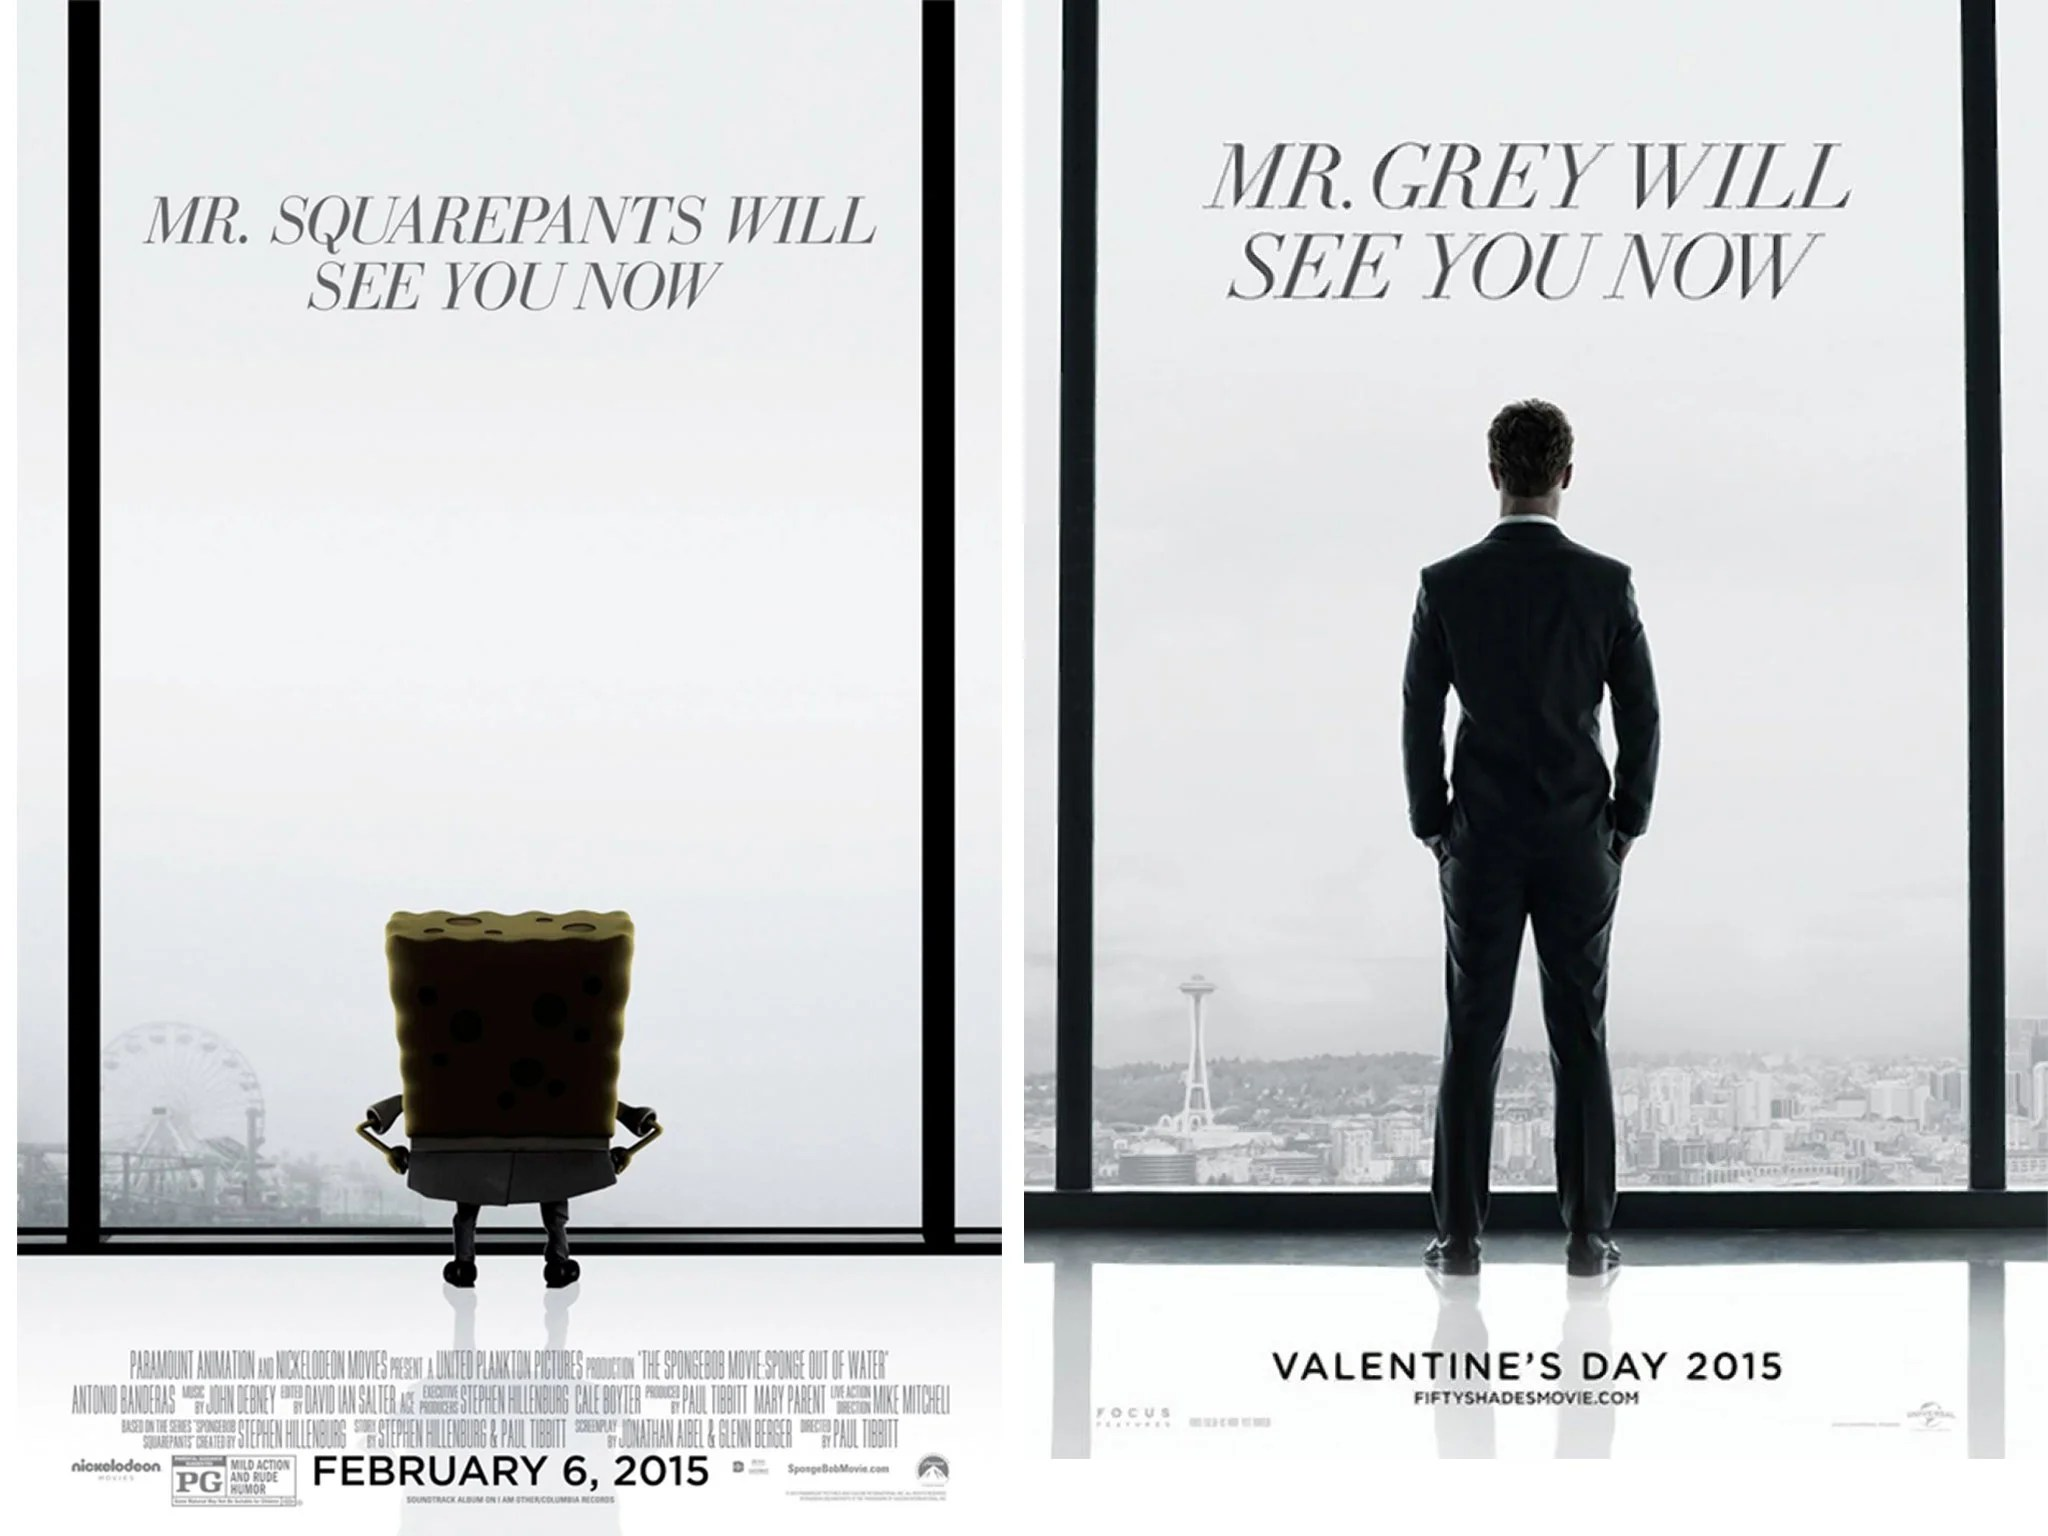 Shads Of Gray Fifty Shades Of Grey Movie Shown Right Next To Spongebob 2 At